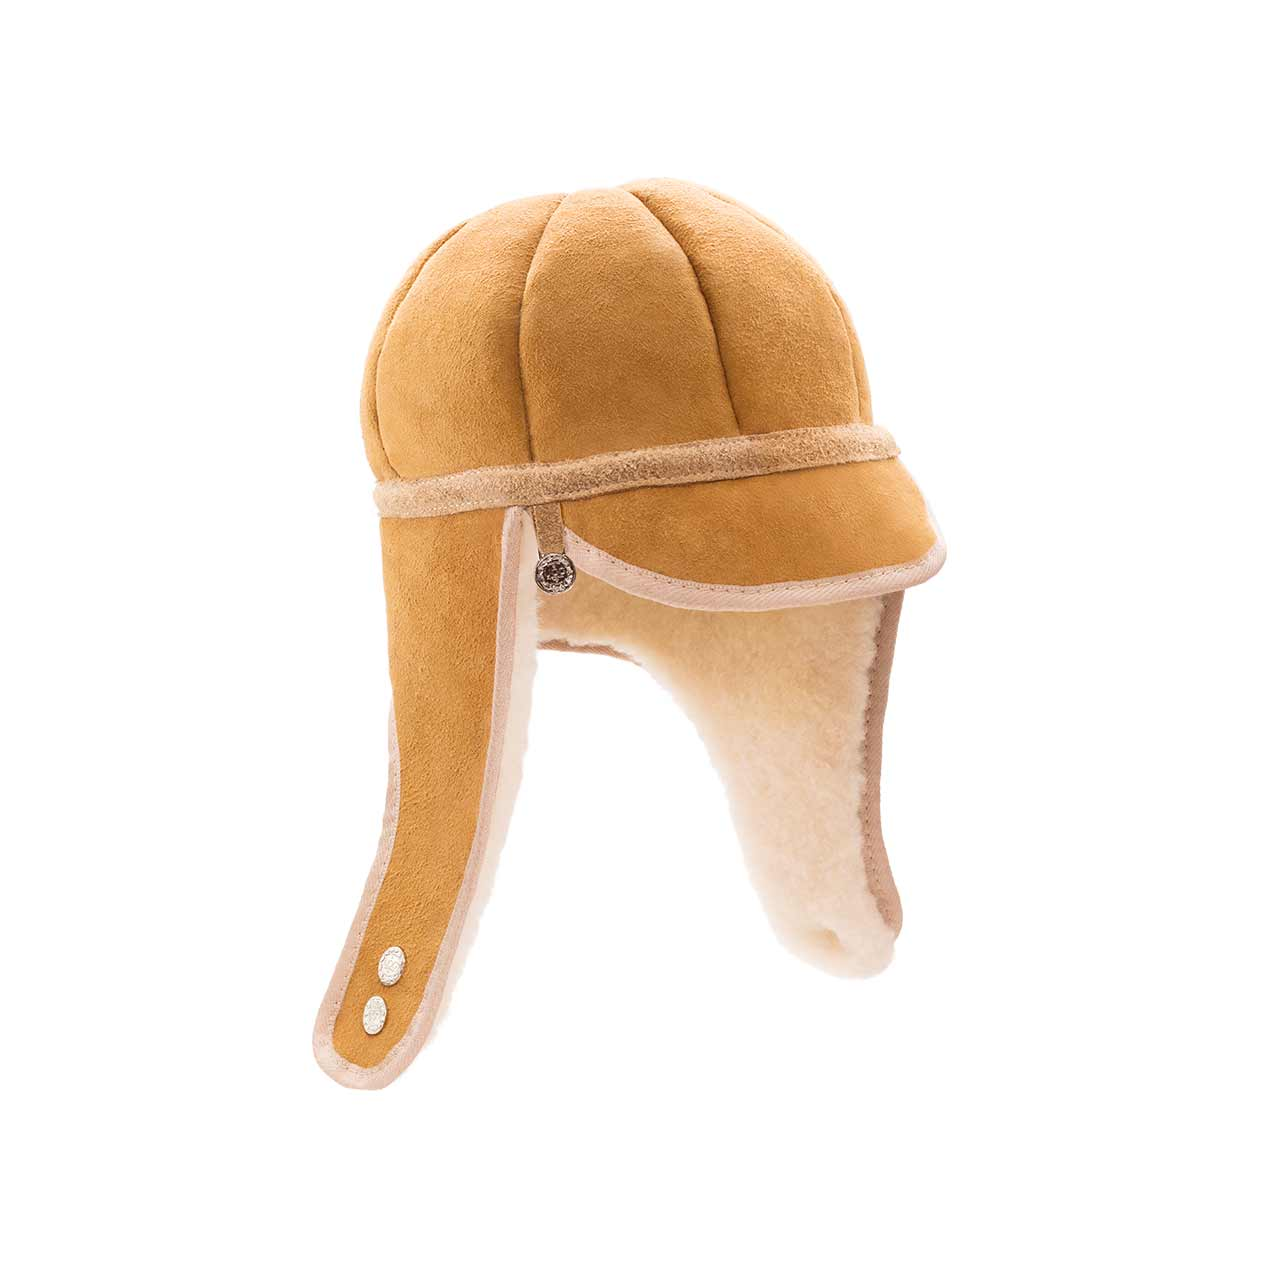 Roman Sheepskin Hat  | The One and Only | Ugg Australia®